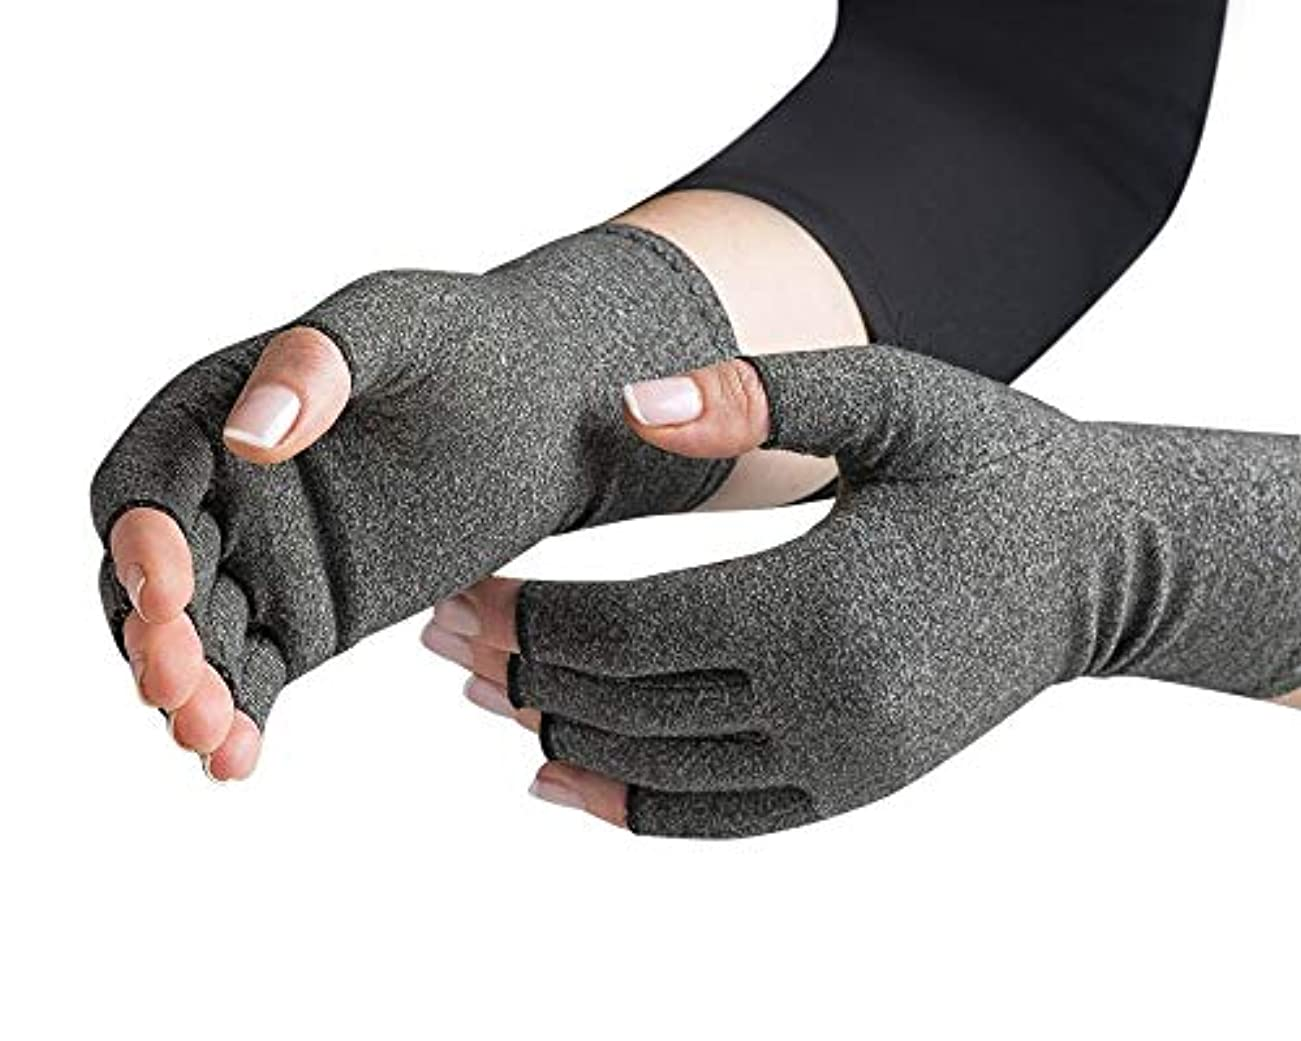 商品共役まさにOriginal with Arthritis Foundation Ease of Use Seal Compression Gloves, Arthritis Glove